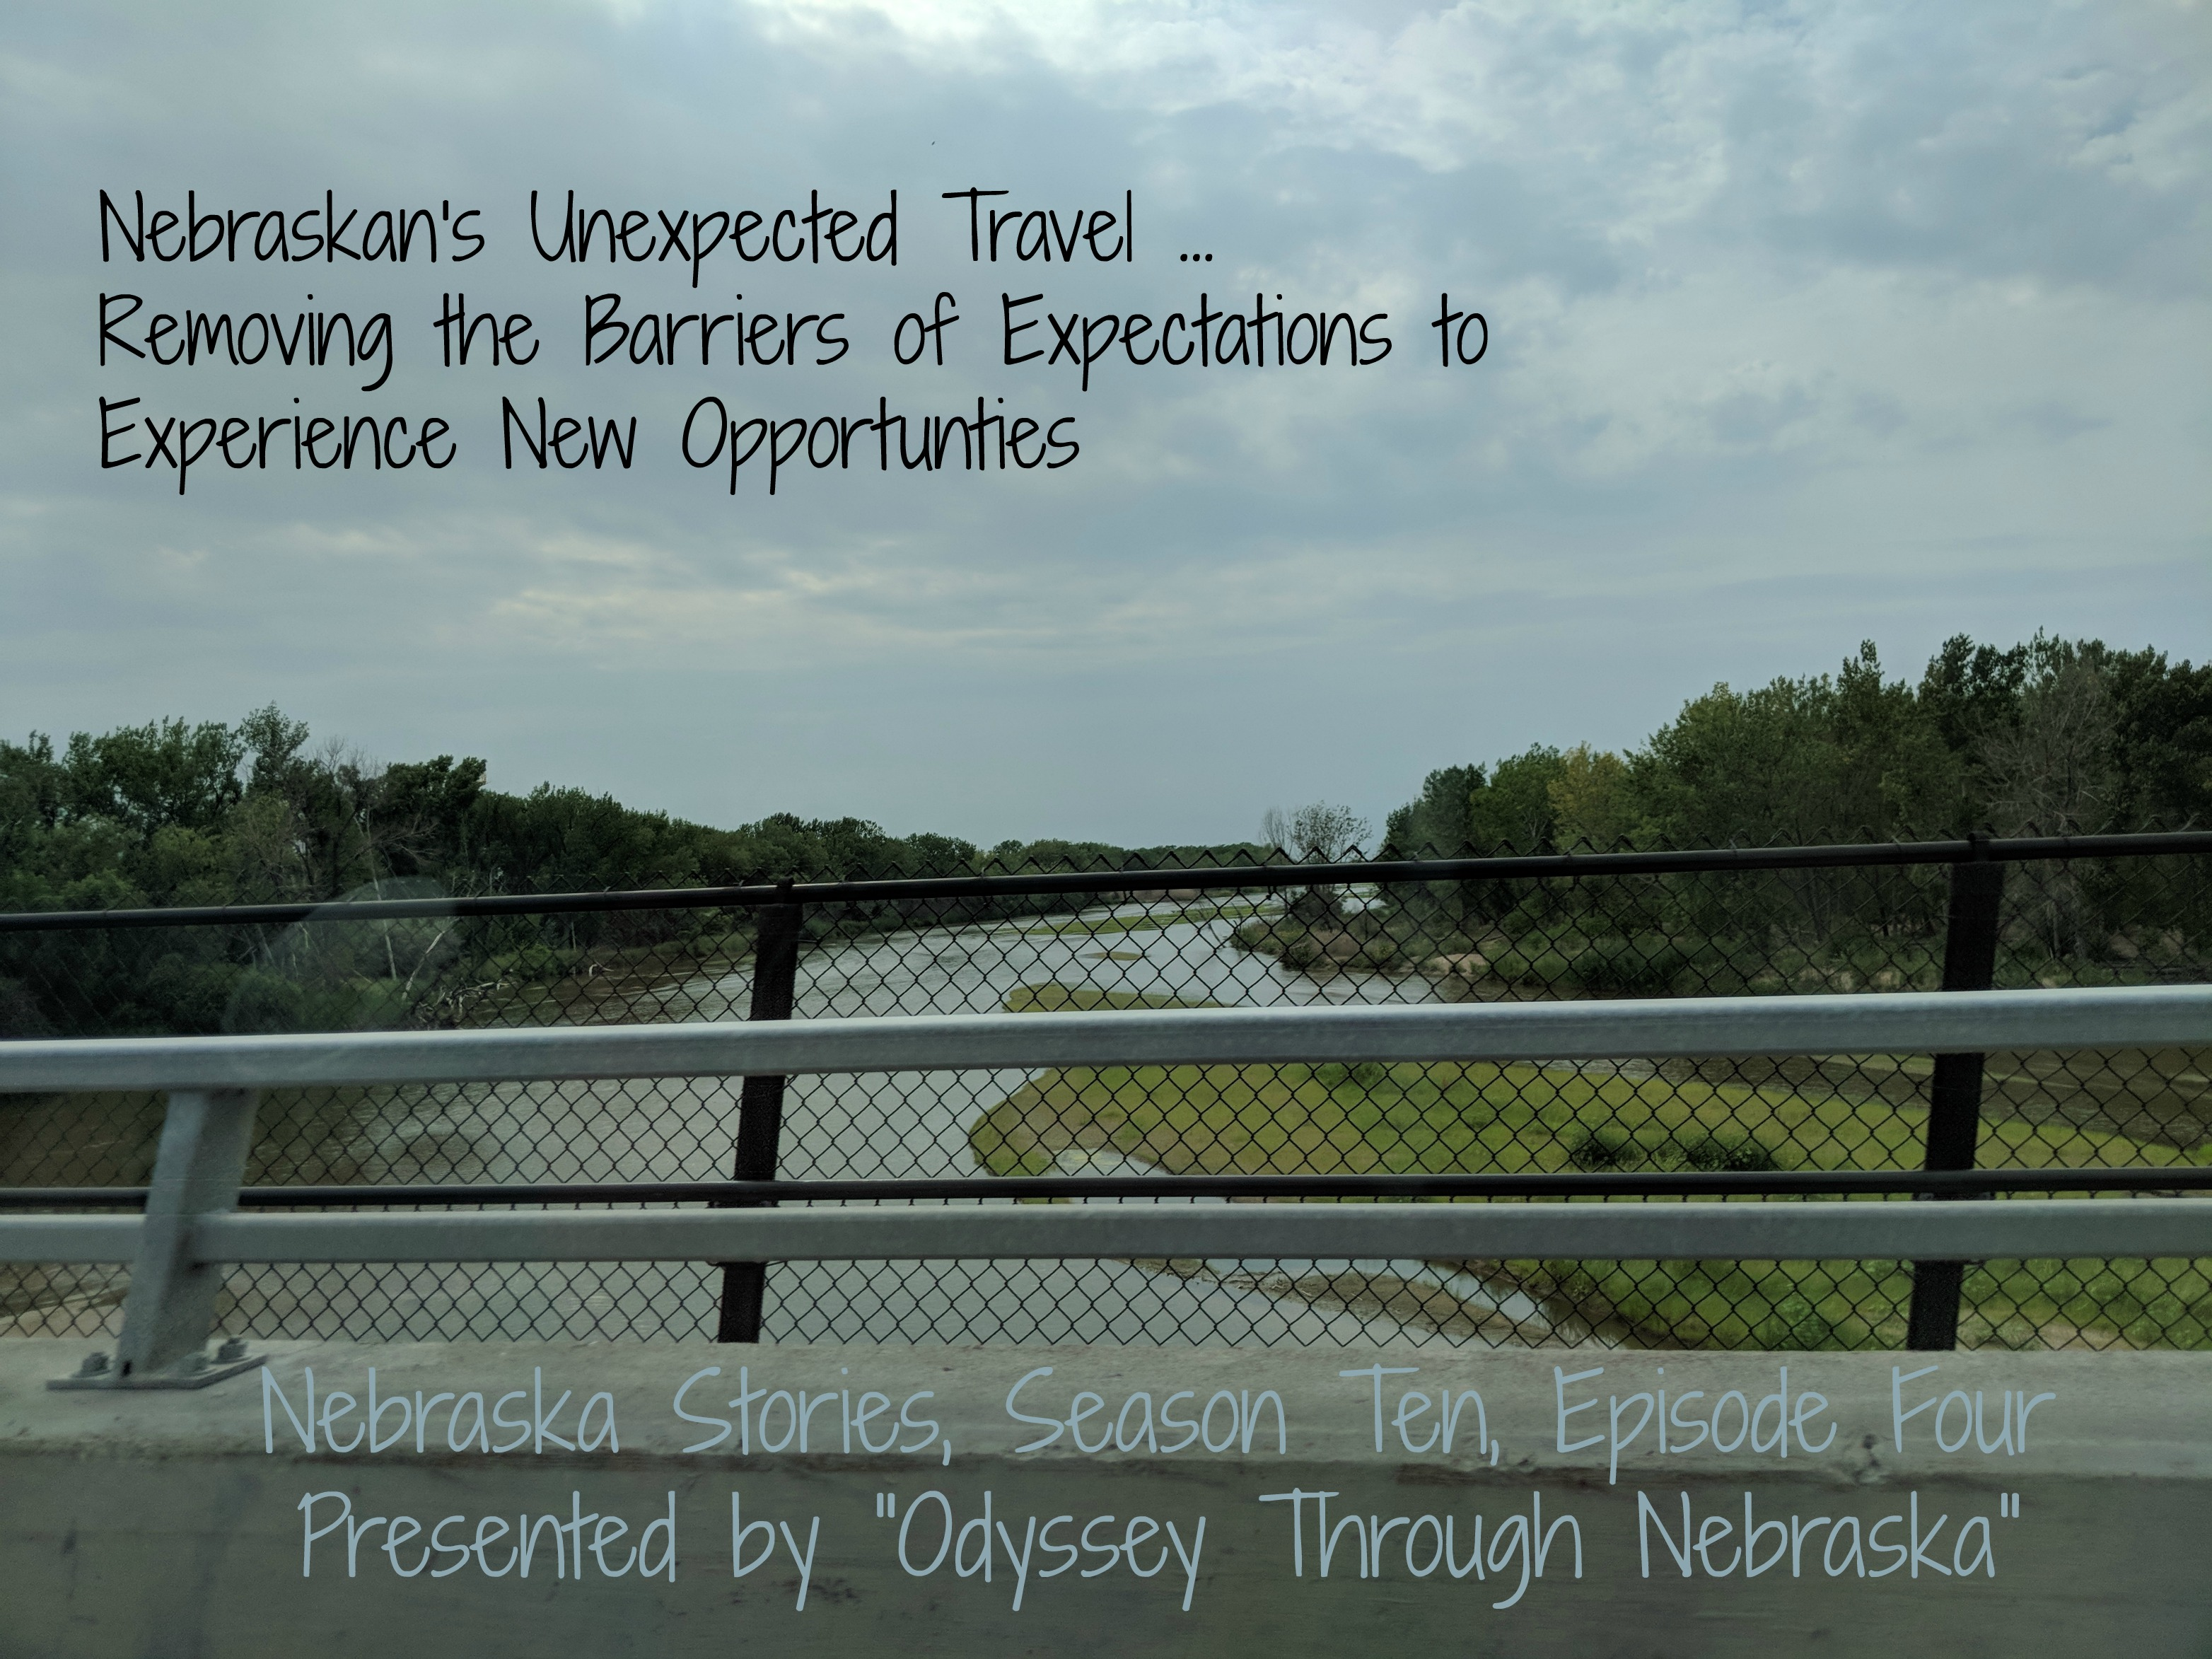 Nebraska Stories Unexpected Travel